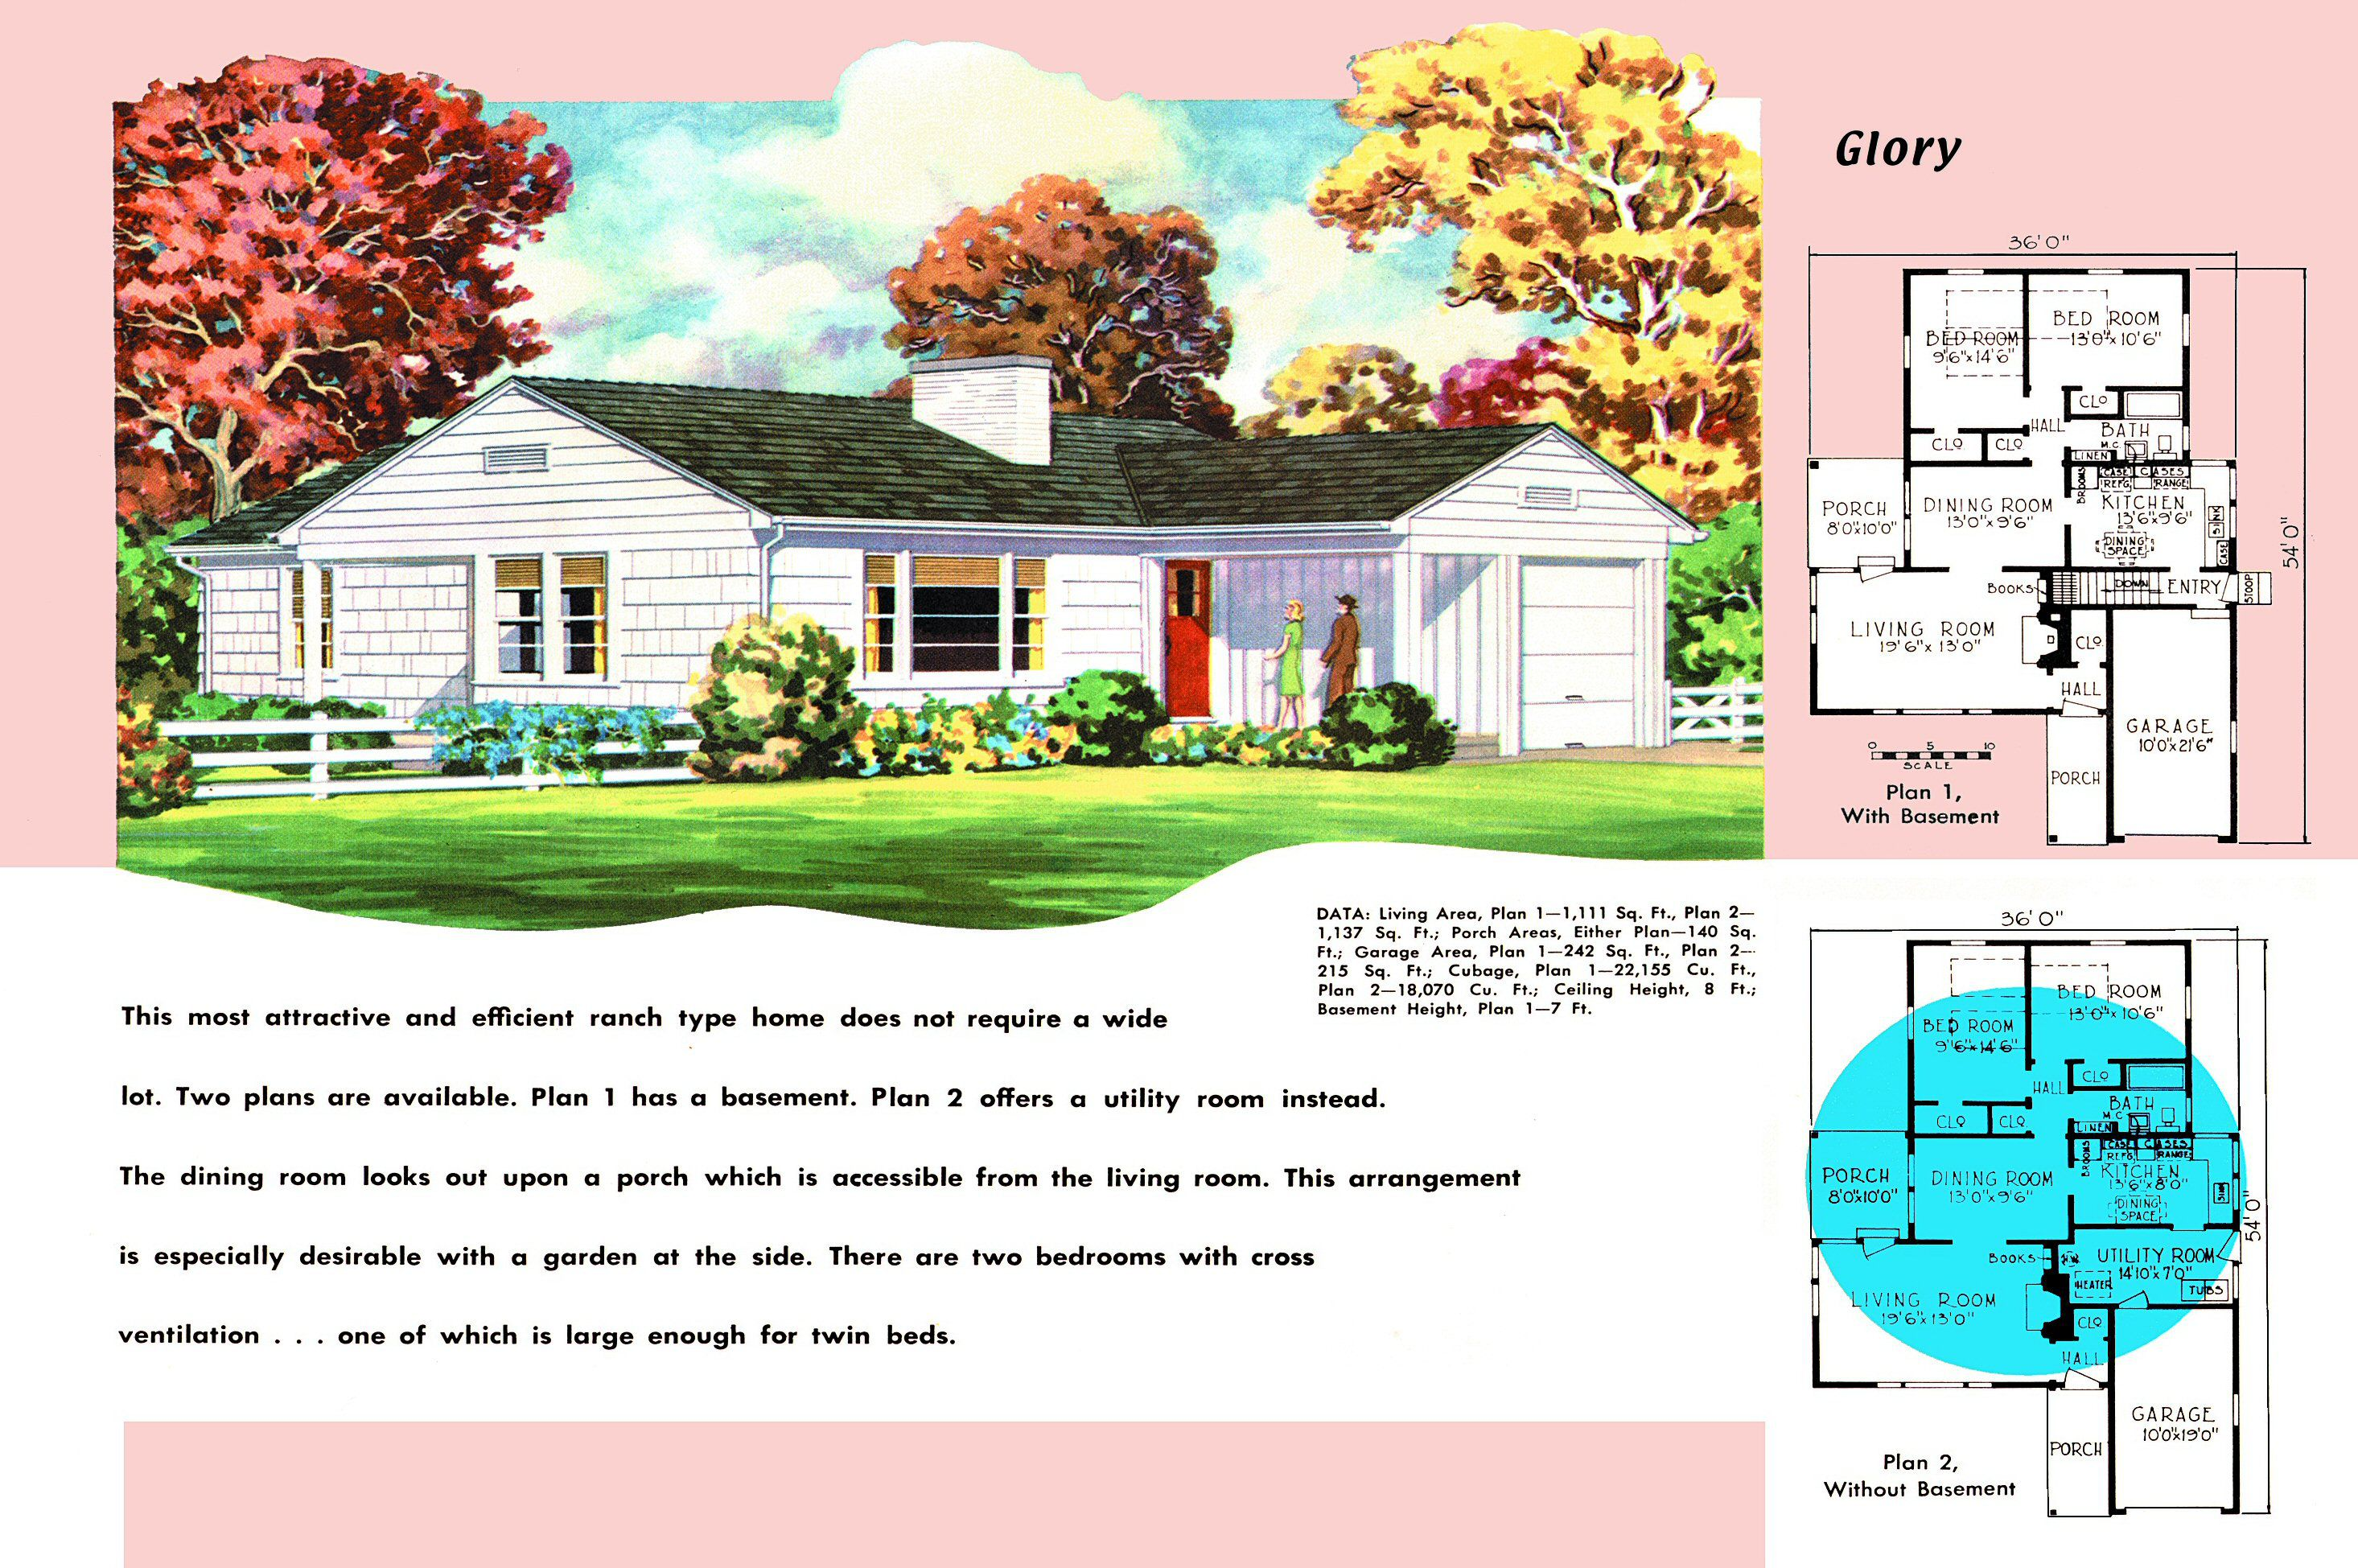 1950s House Plans for Por Ranch Homes on 3 car garage design plans, bath house design plans, big house design plans, ranch home remodeling, ranch home layout designs, little house design plans, ranch home bedrooms, ranch home models, small house design plans, ranch home doors, ranch home lighting, apartment complex design plans, ranch home interior design, 2 car garage design plans, ranch home kitchen, basement apartment design plans, brick house design plans, ranch home design ideas, ranch with farmers porch design, raised ranch design plans,